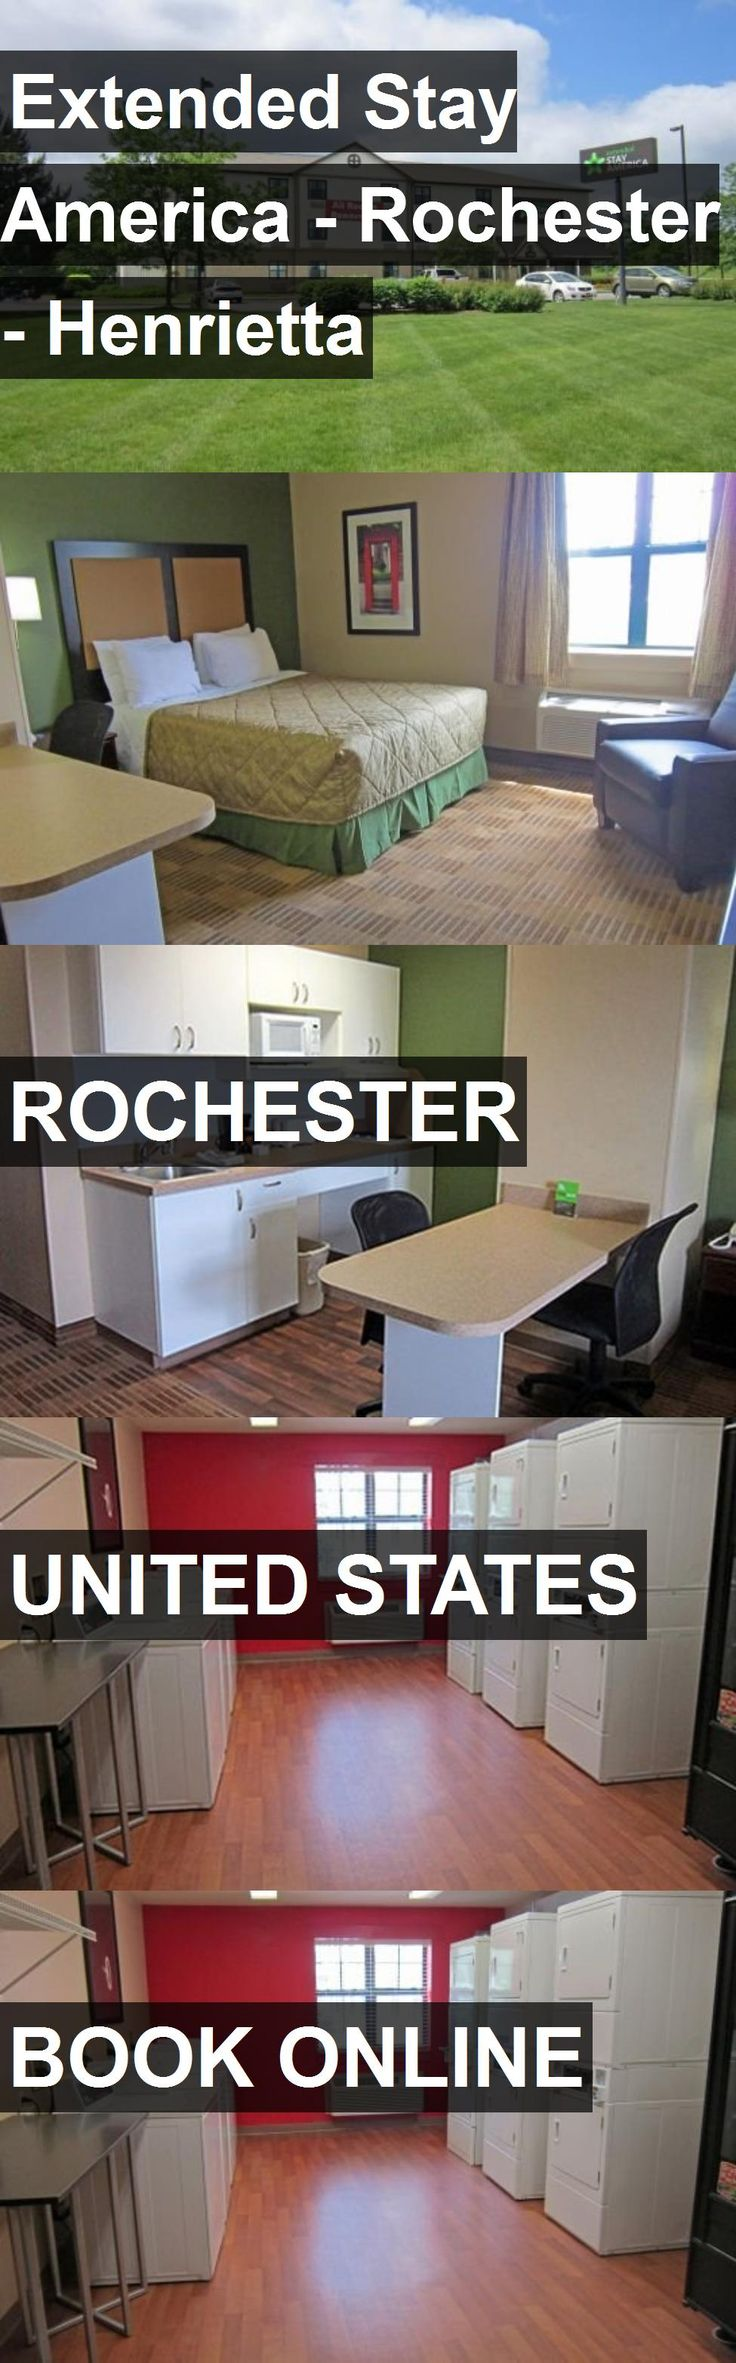 Hotel Extended Stay America - Rochester - Henrietta in Rochester, United States. For more information, photos, reviews and best prices please follow the link. #UnitedStates #Rochester #travel #vacation #hotel